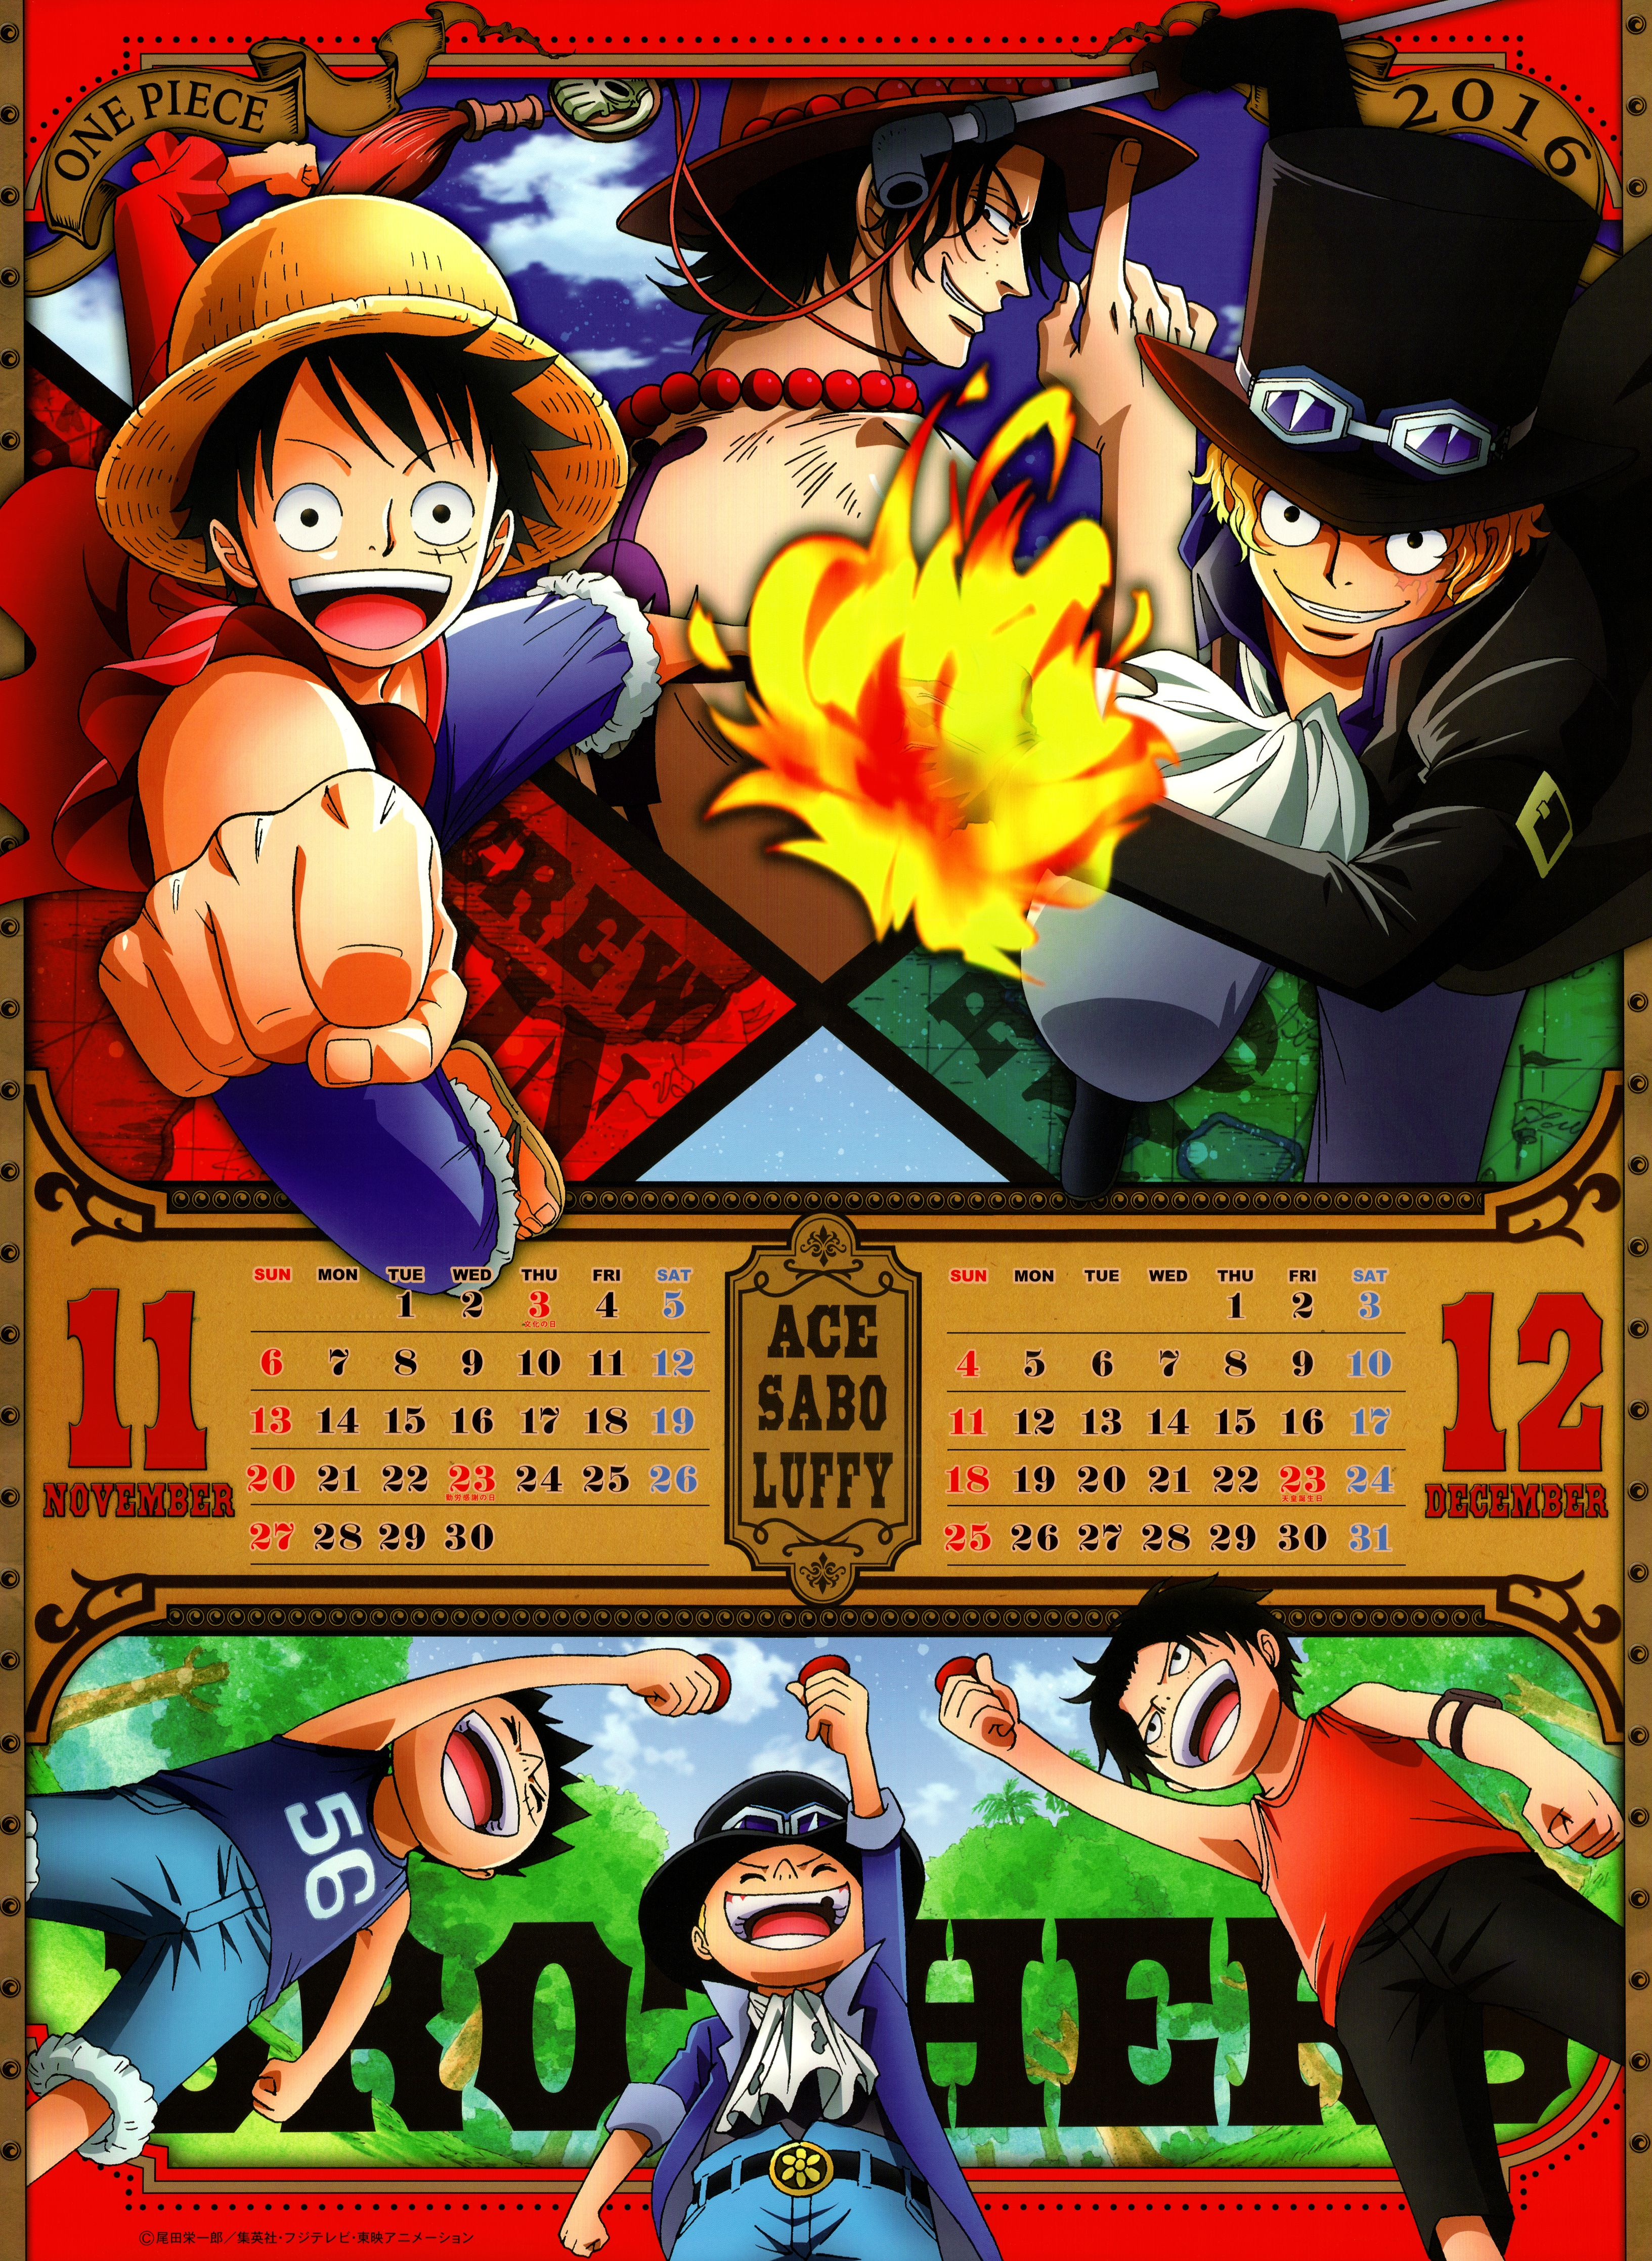 Toei animation one piece one piece 2016 calendar monkey d luffy sabo portgas d ace one - Toei animation one piece ...